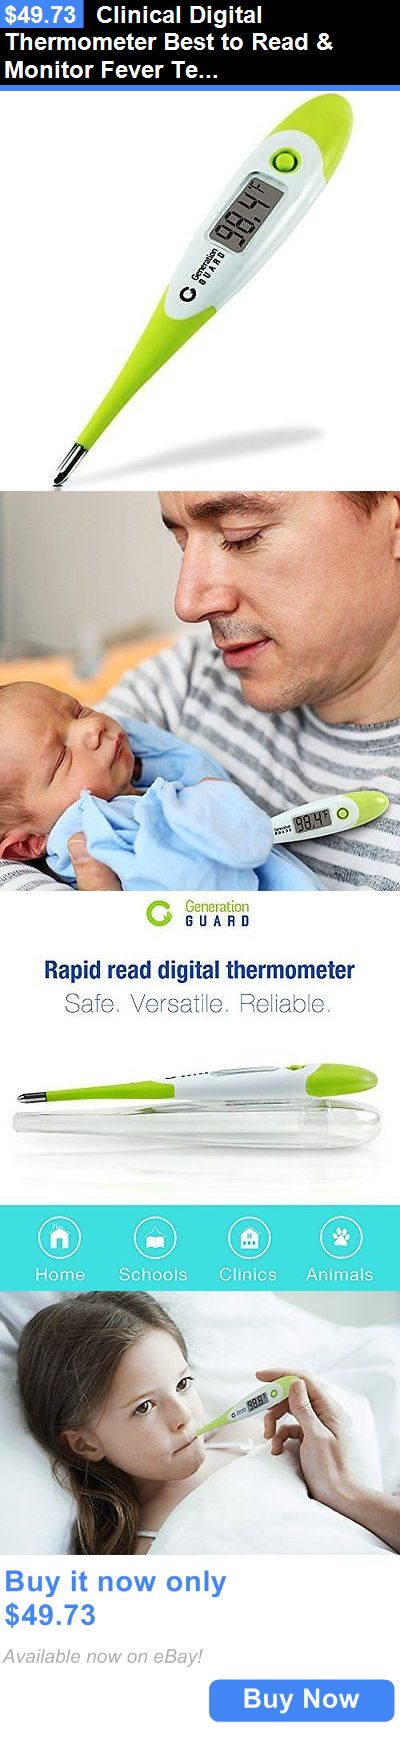 Thermometers: Clinical Digital Thermometer Best To Read And Monitor Fever Temperature In 15 New BUY IT NOW ONLY: $49.73